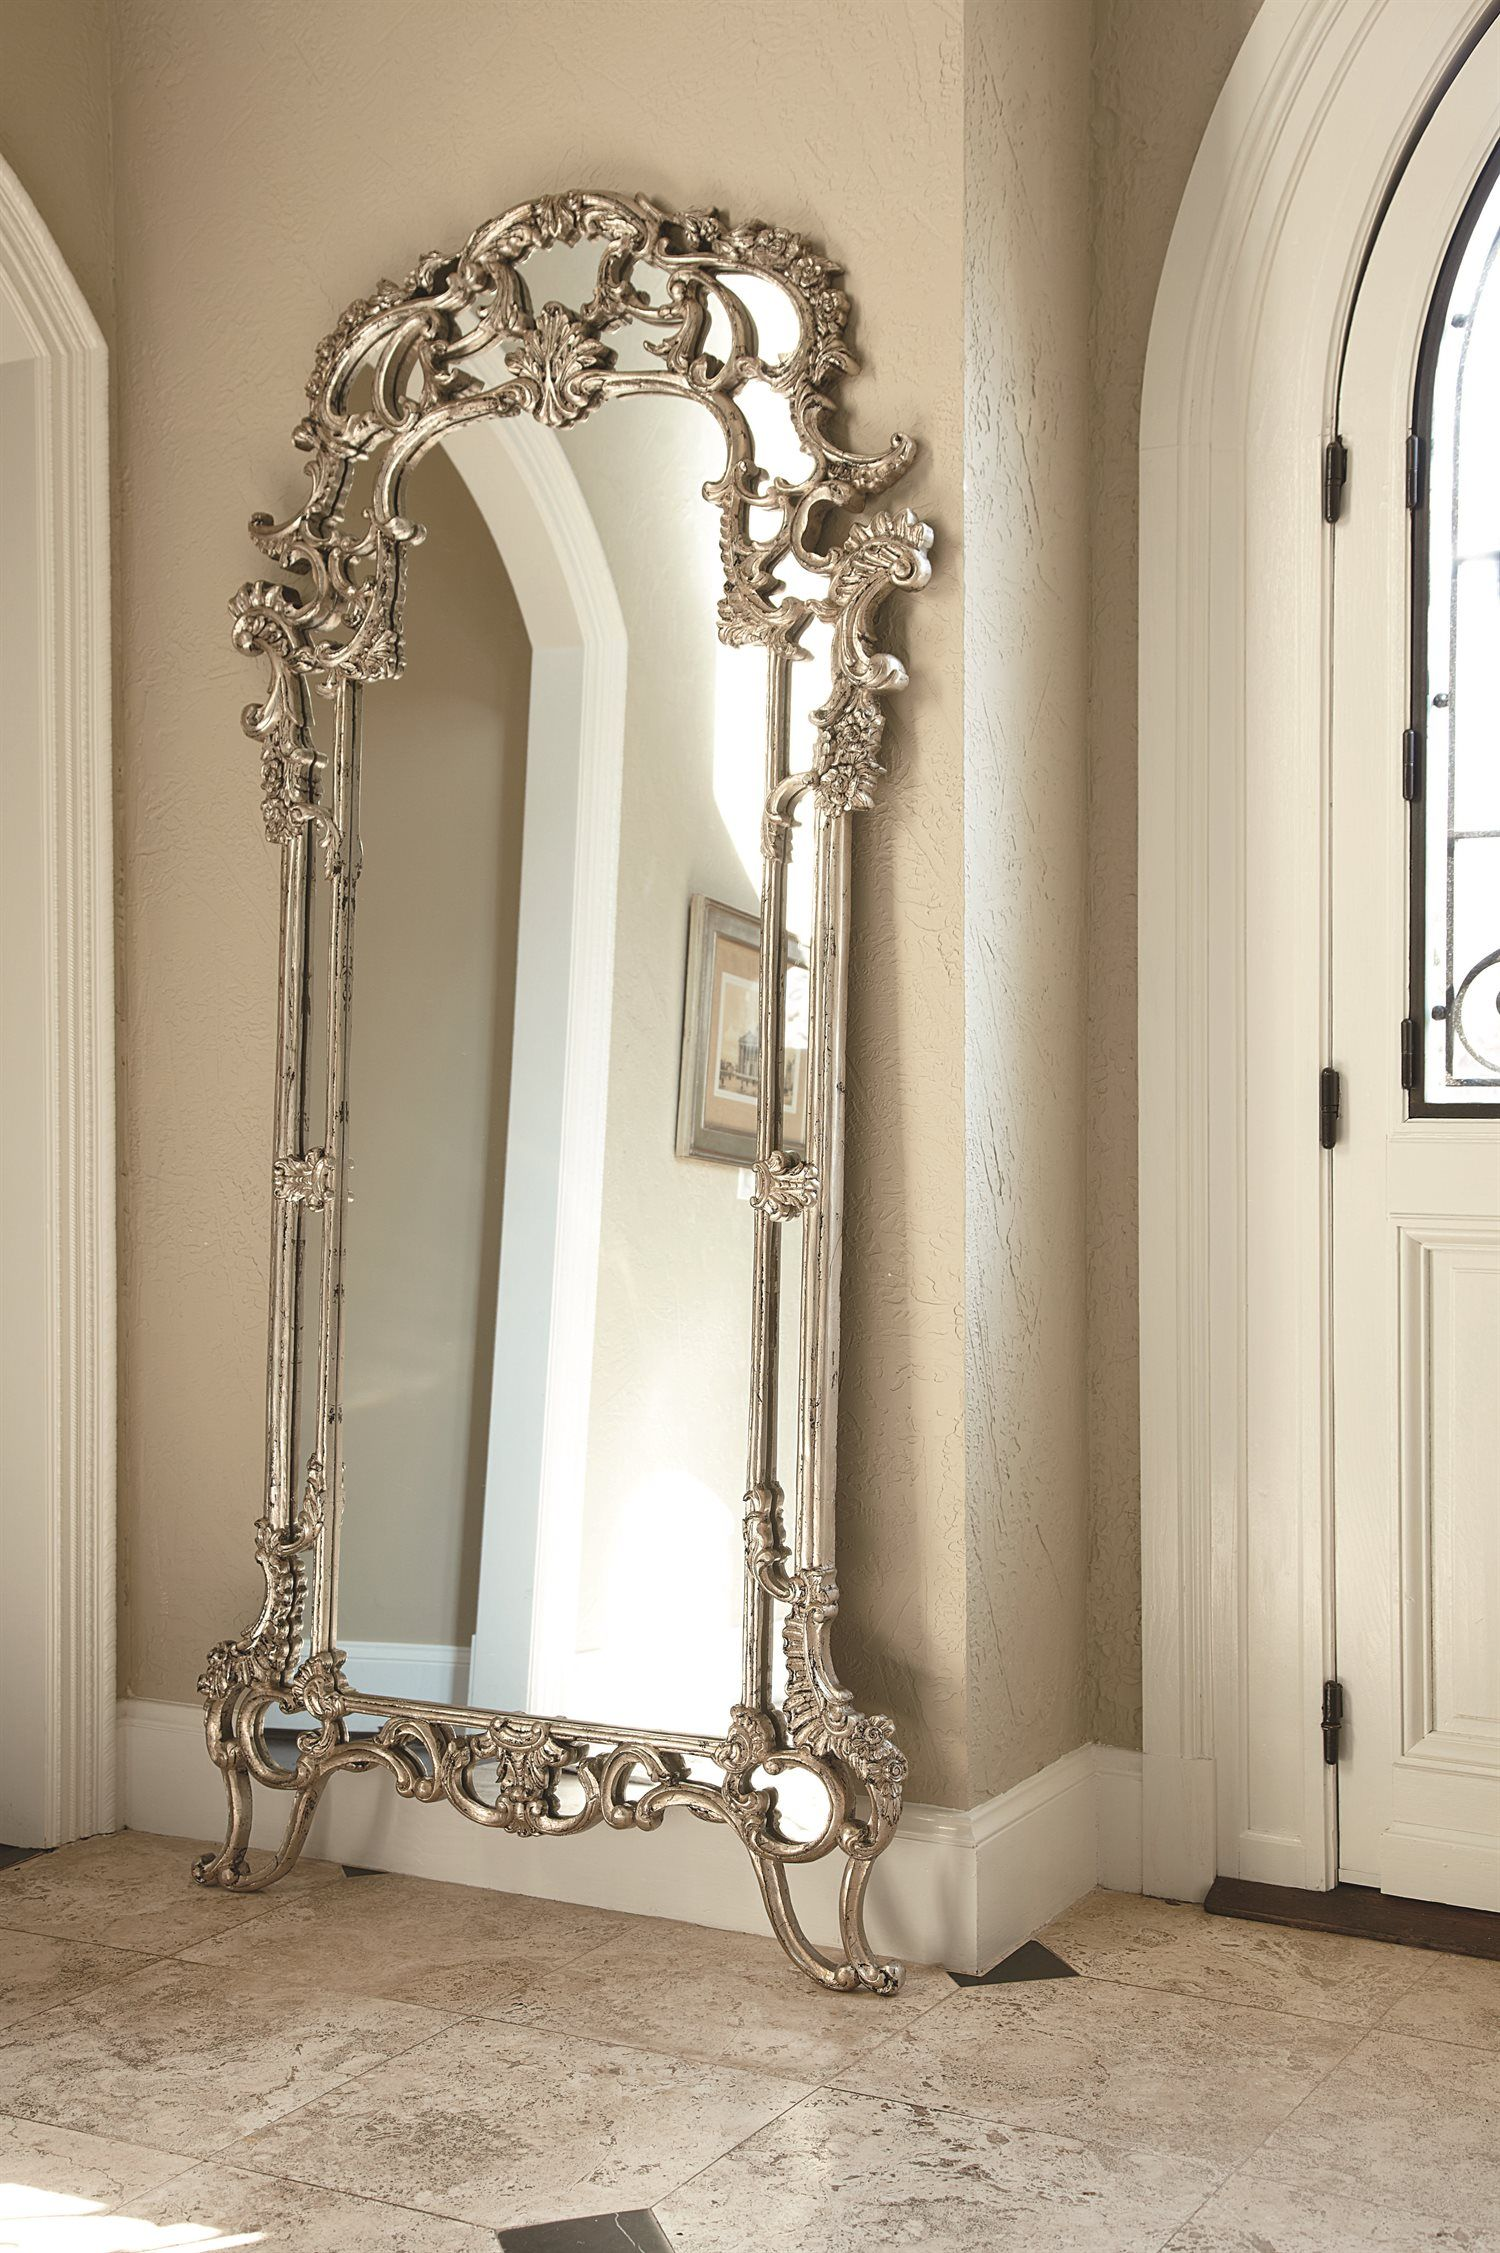 Luxury Home Decor Shopping For Indoor Outdoor Floor Mirror Luxury Home Decor Mirror Decor